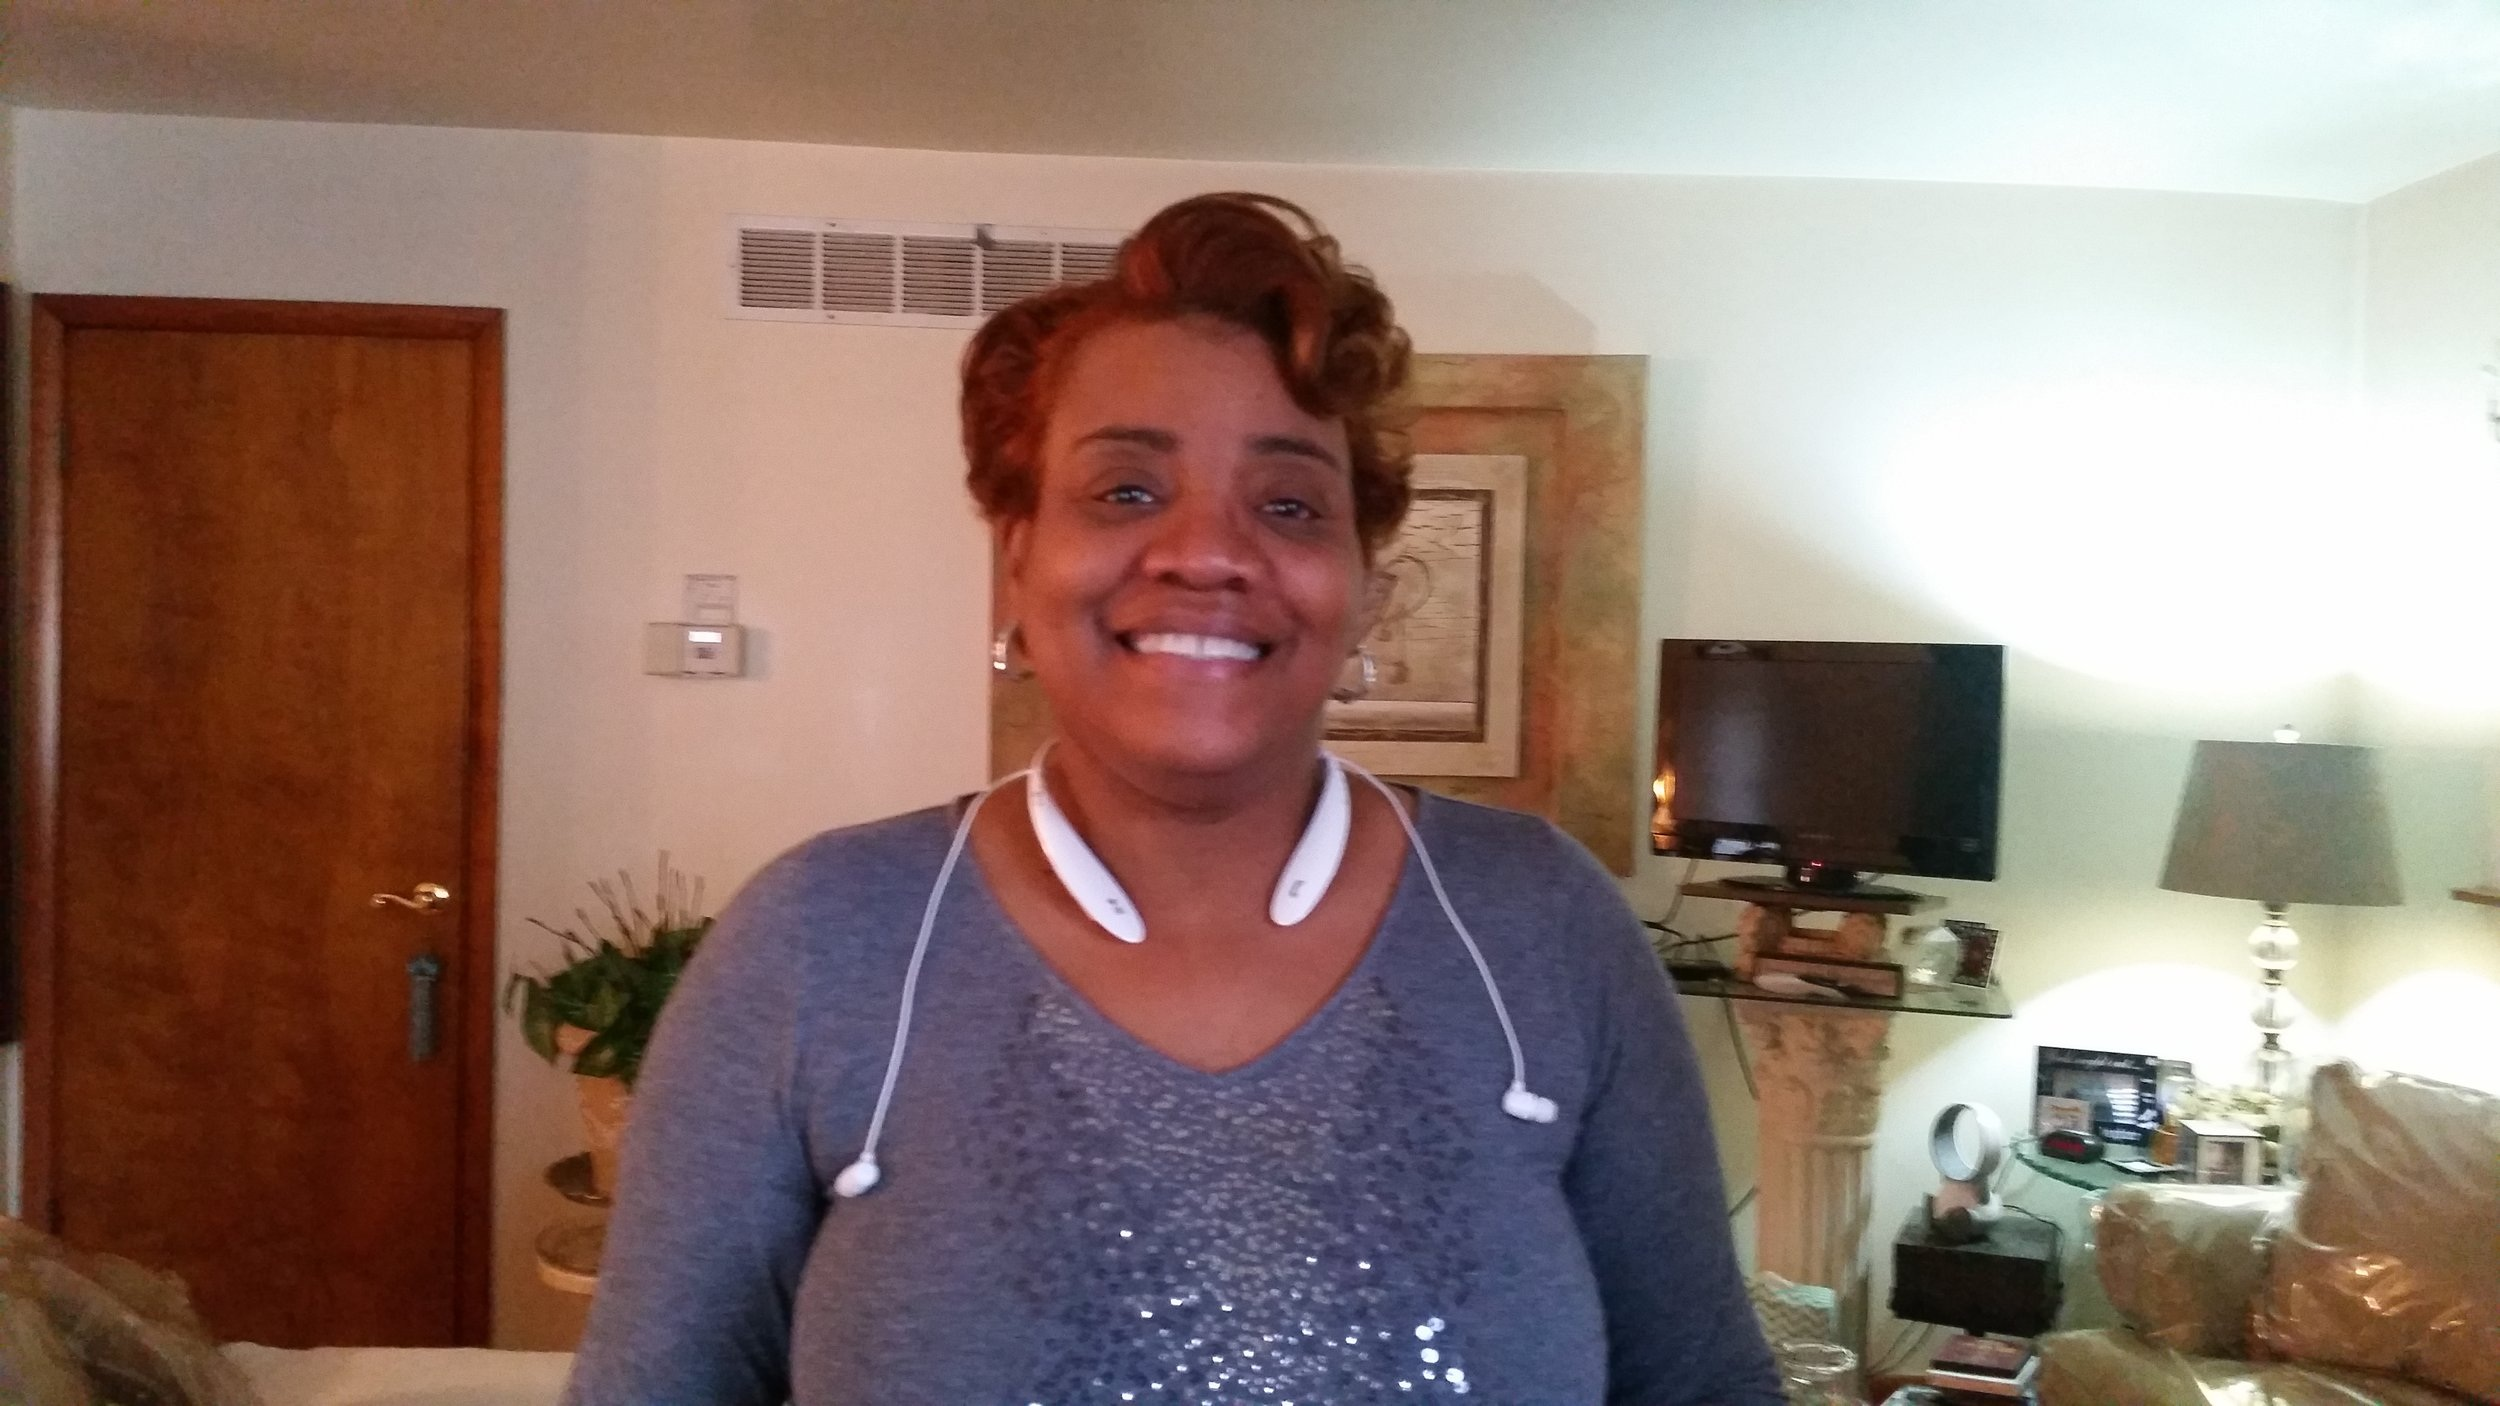 This caregiver was happy to have us in her home. She takes care of her mother.